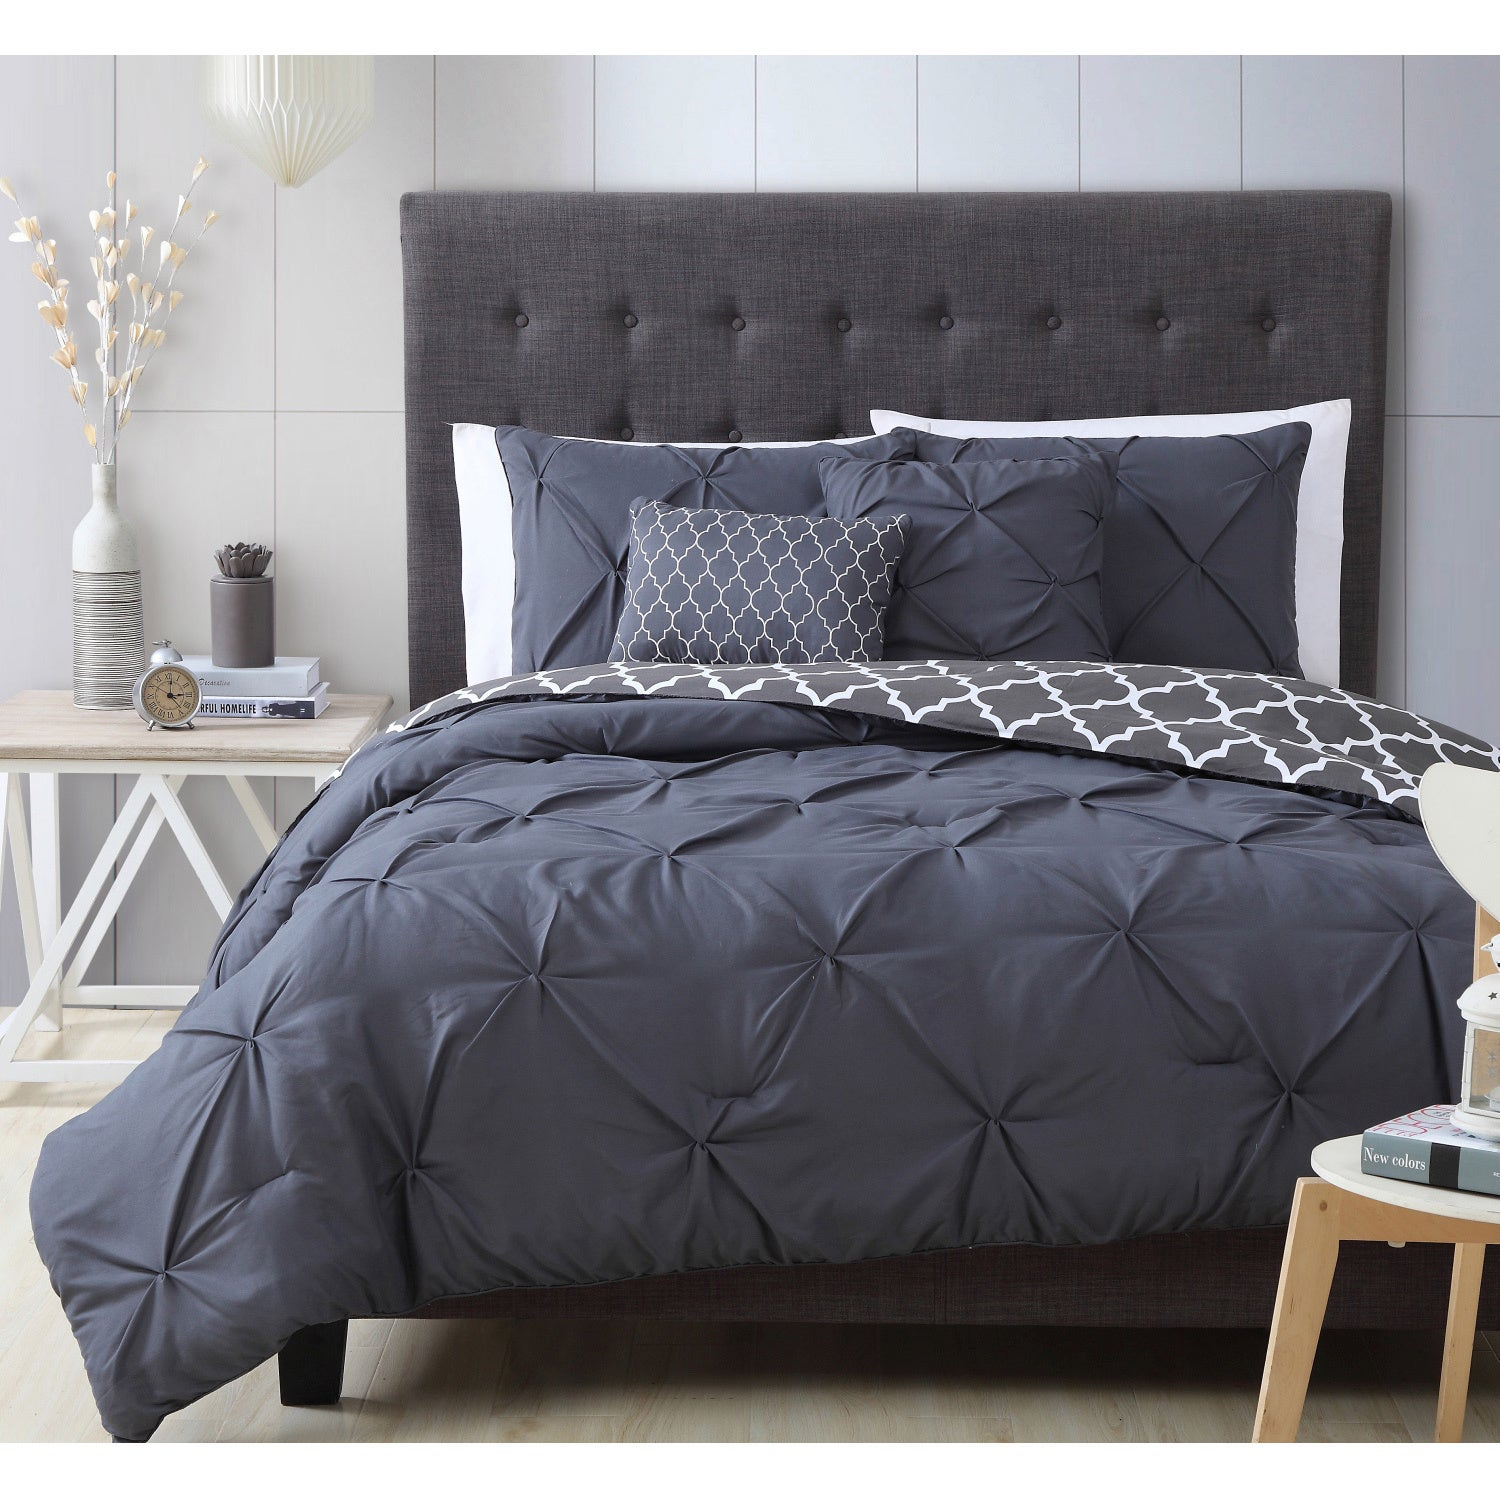 sets overstock to ross with bed set wwe bedroom com sears bedding your concept home comforters admirable regard